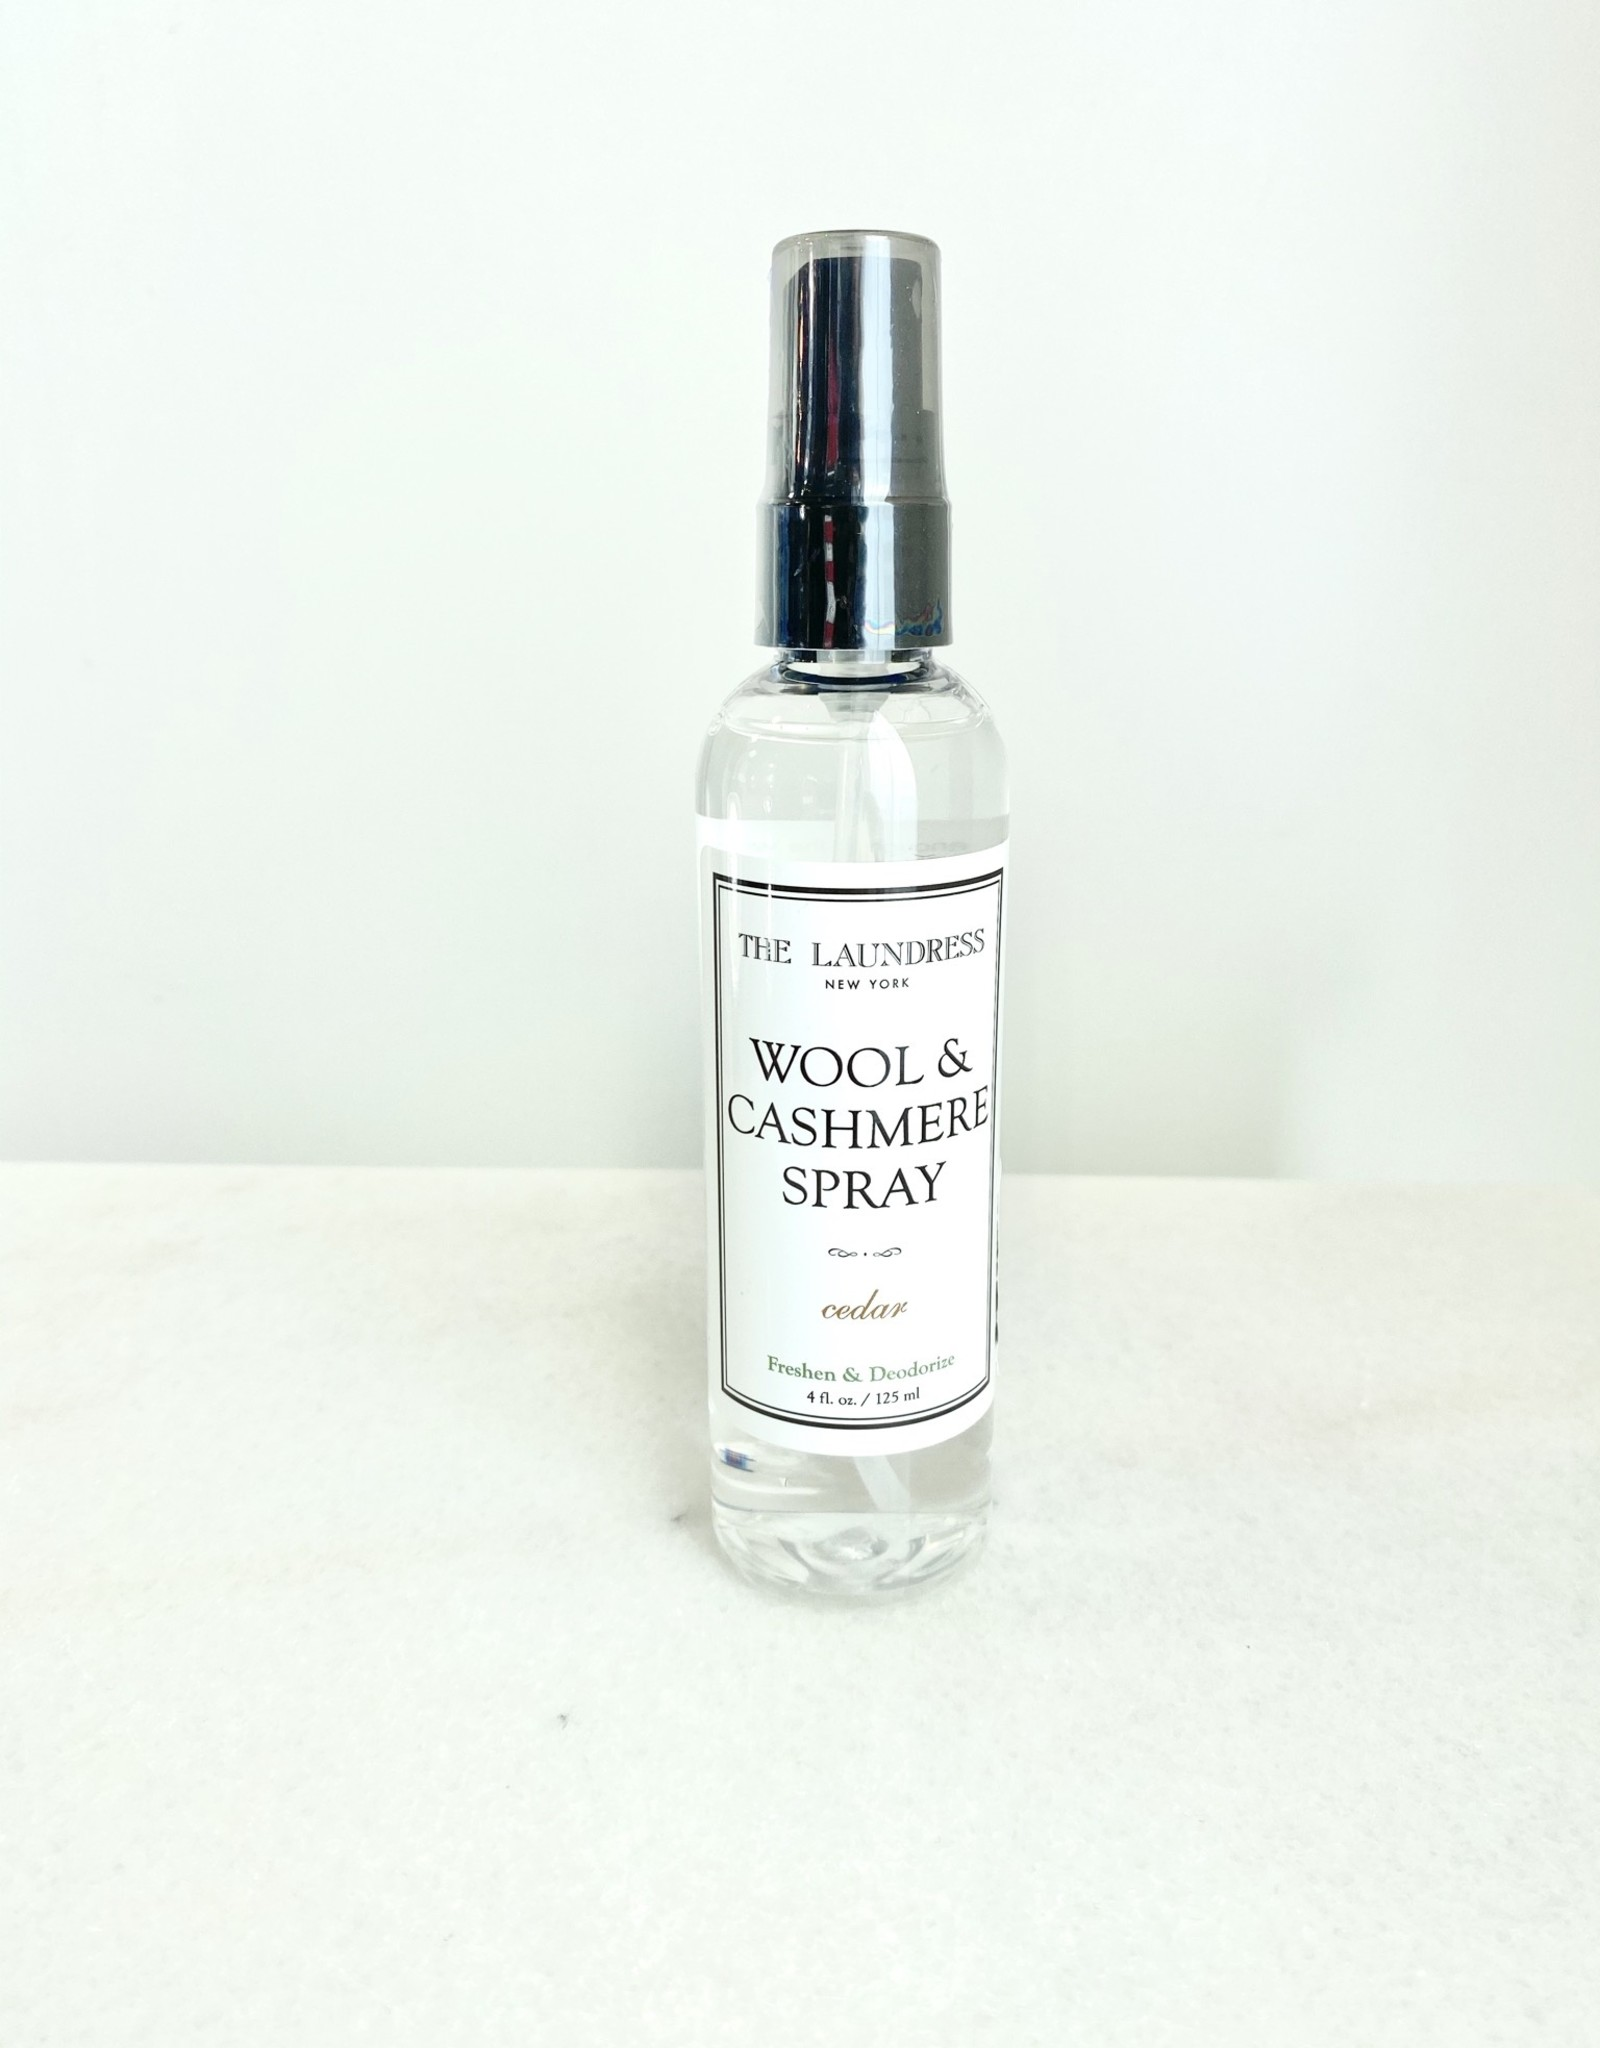 The Laundress THE LAUNDRESS Wool & Cashmere Spray 4oz.